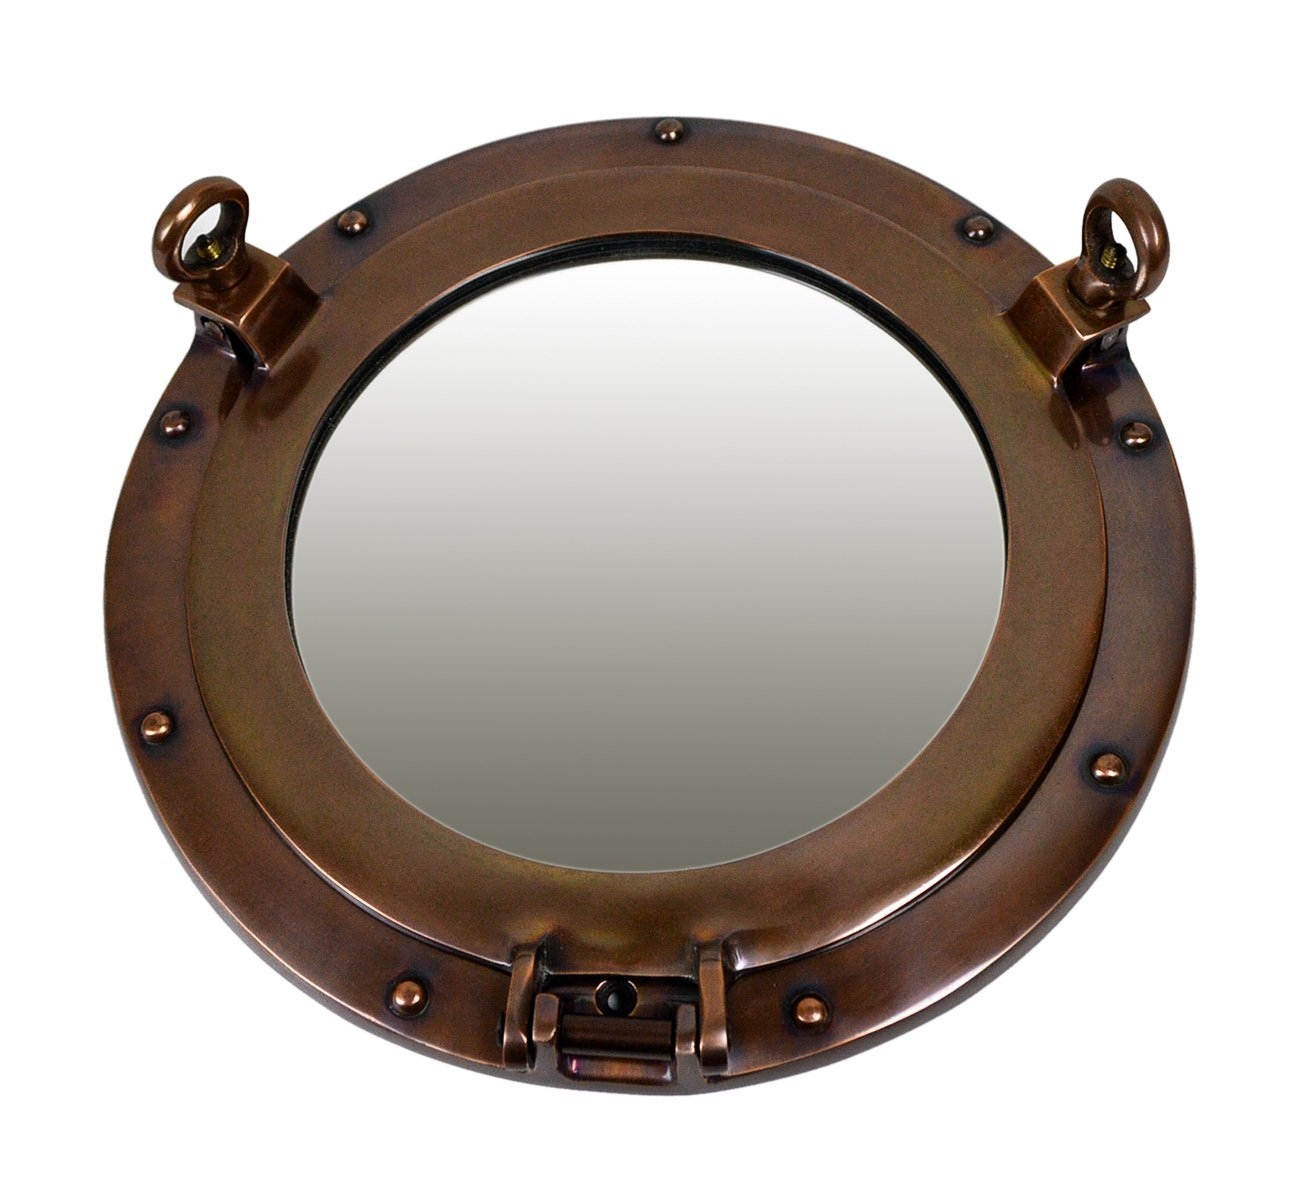 Porthole Windows Porthole Mirrors Largest Selection Ships Port Holes Intended For Porthole Mirrors (Image 12 of 15)